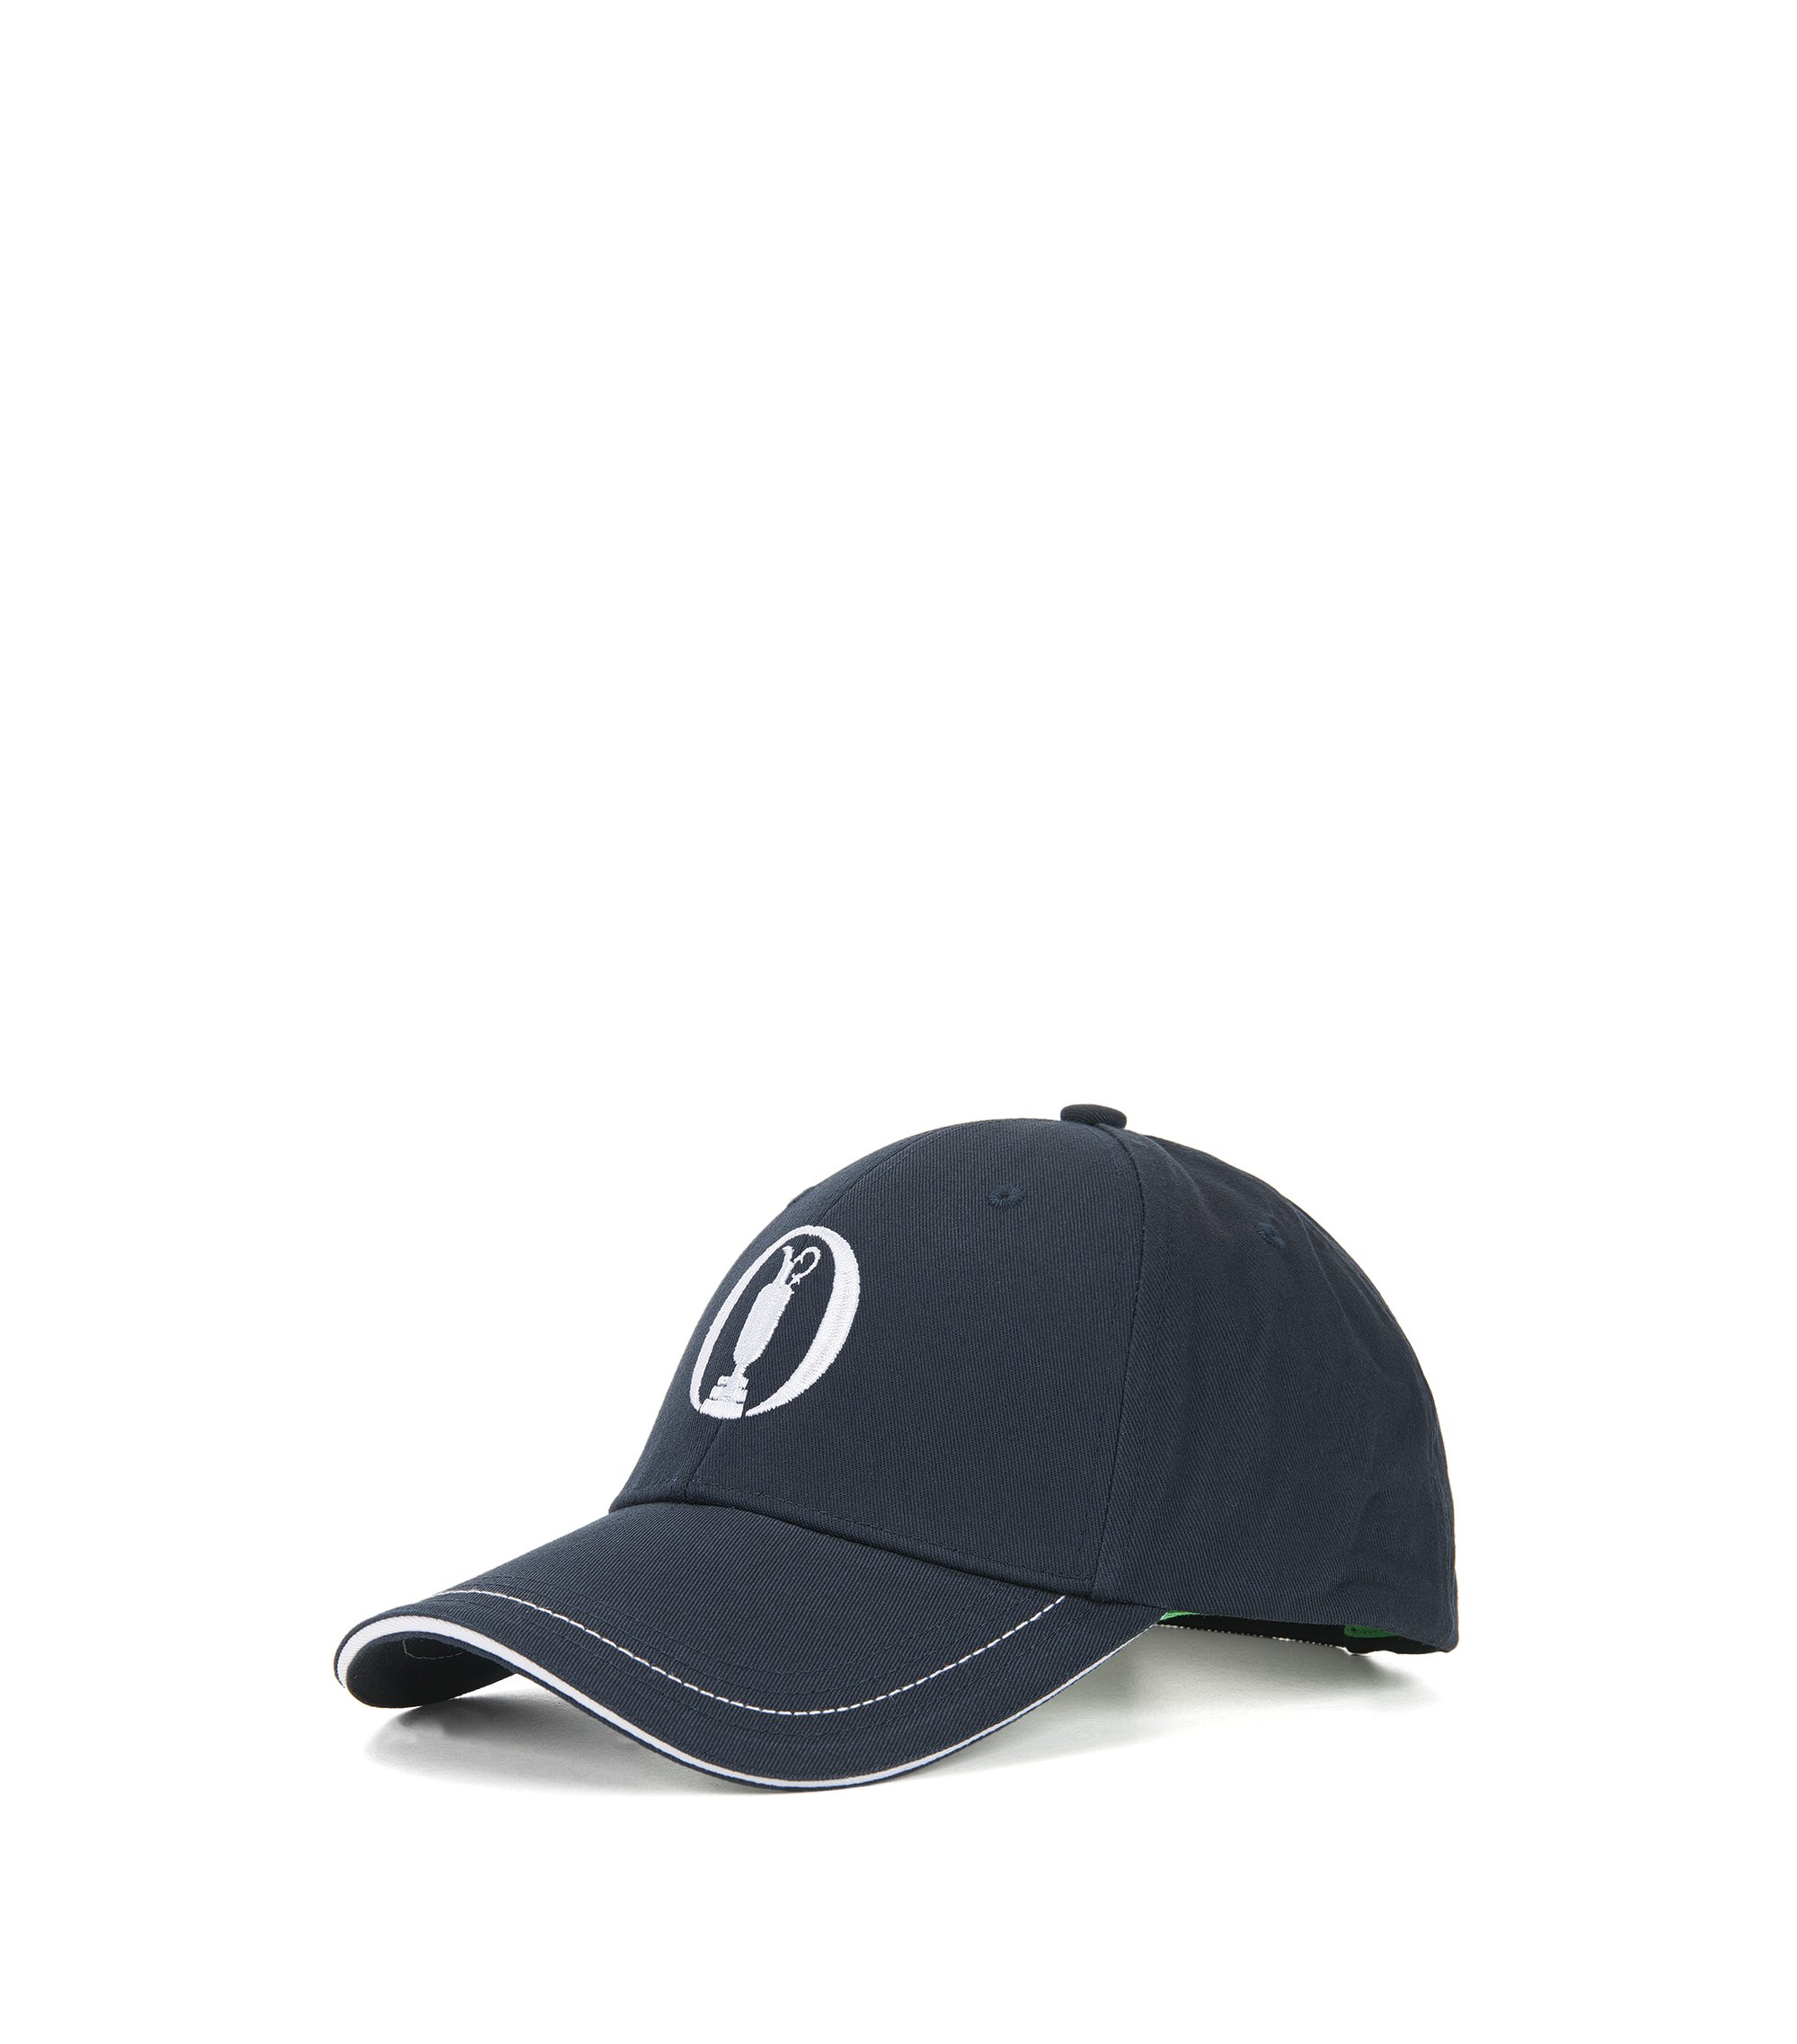 Casquette de base-ball BOSS en twill de coton de la collection The Open, Bleu foncé